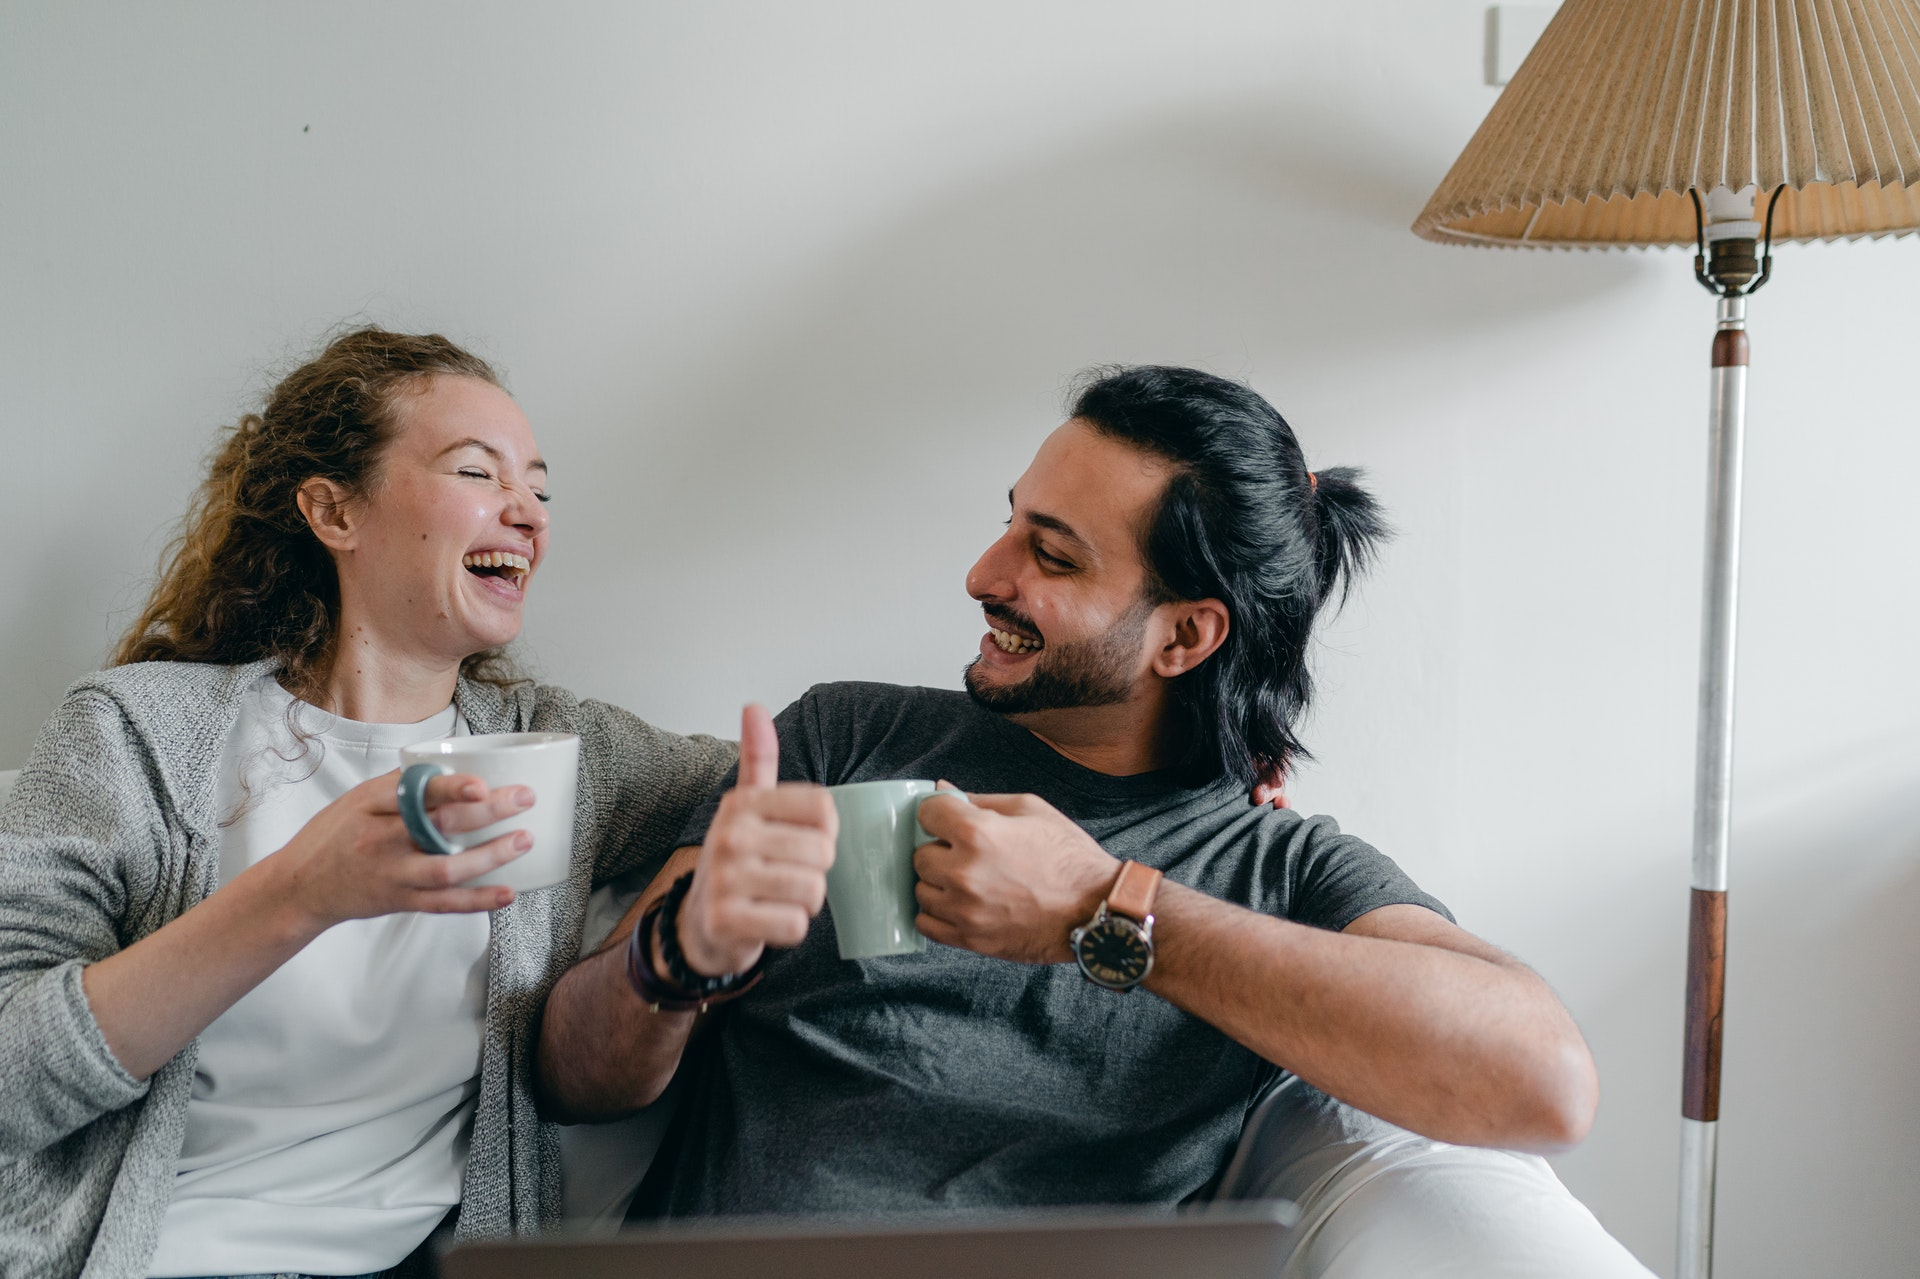 happy couple laughing on a couch and drinking coffee, having a deep conversation